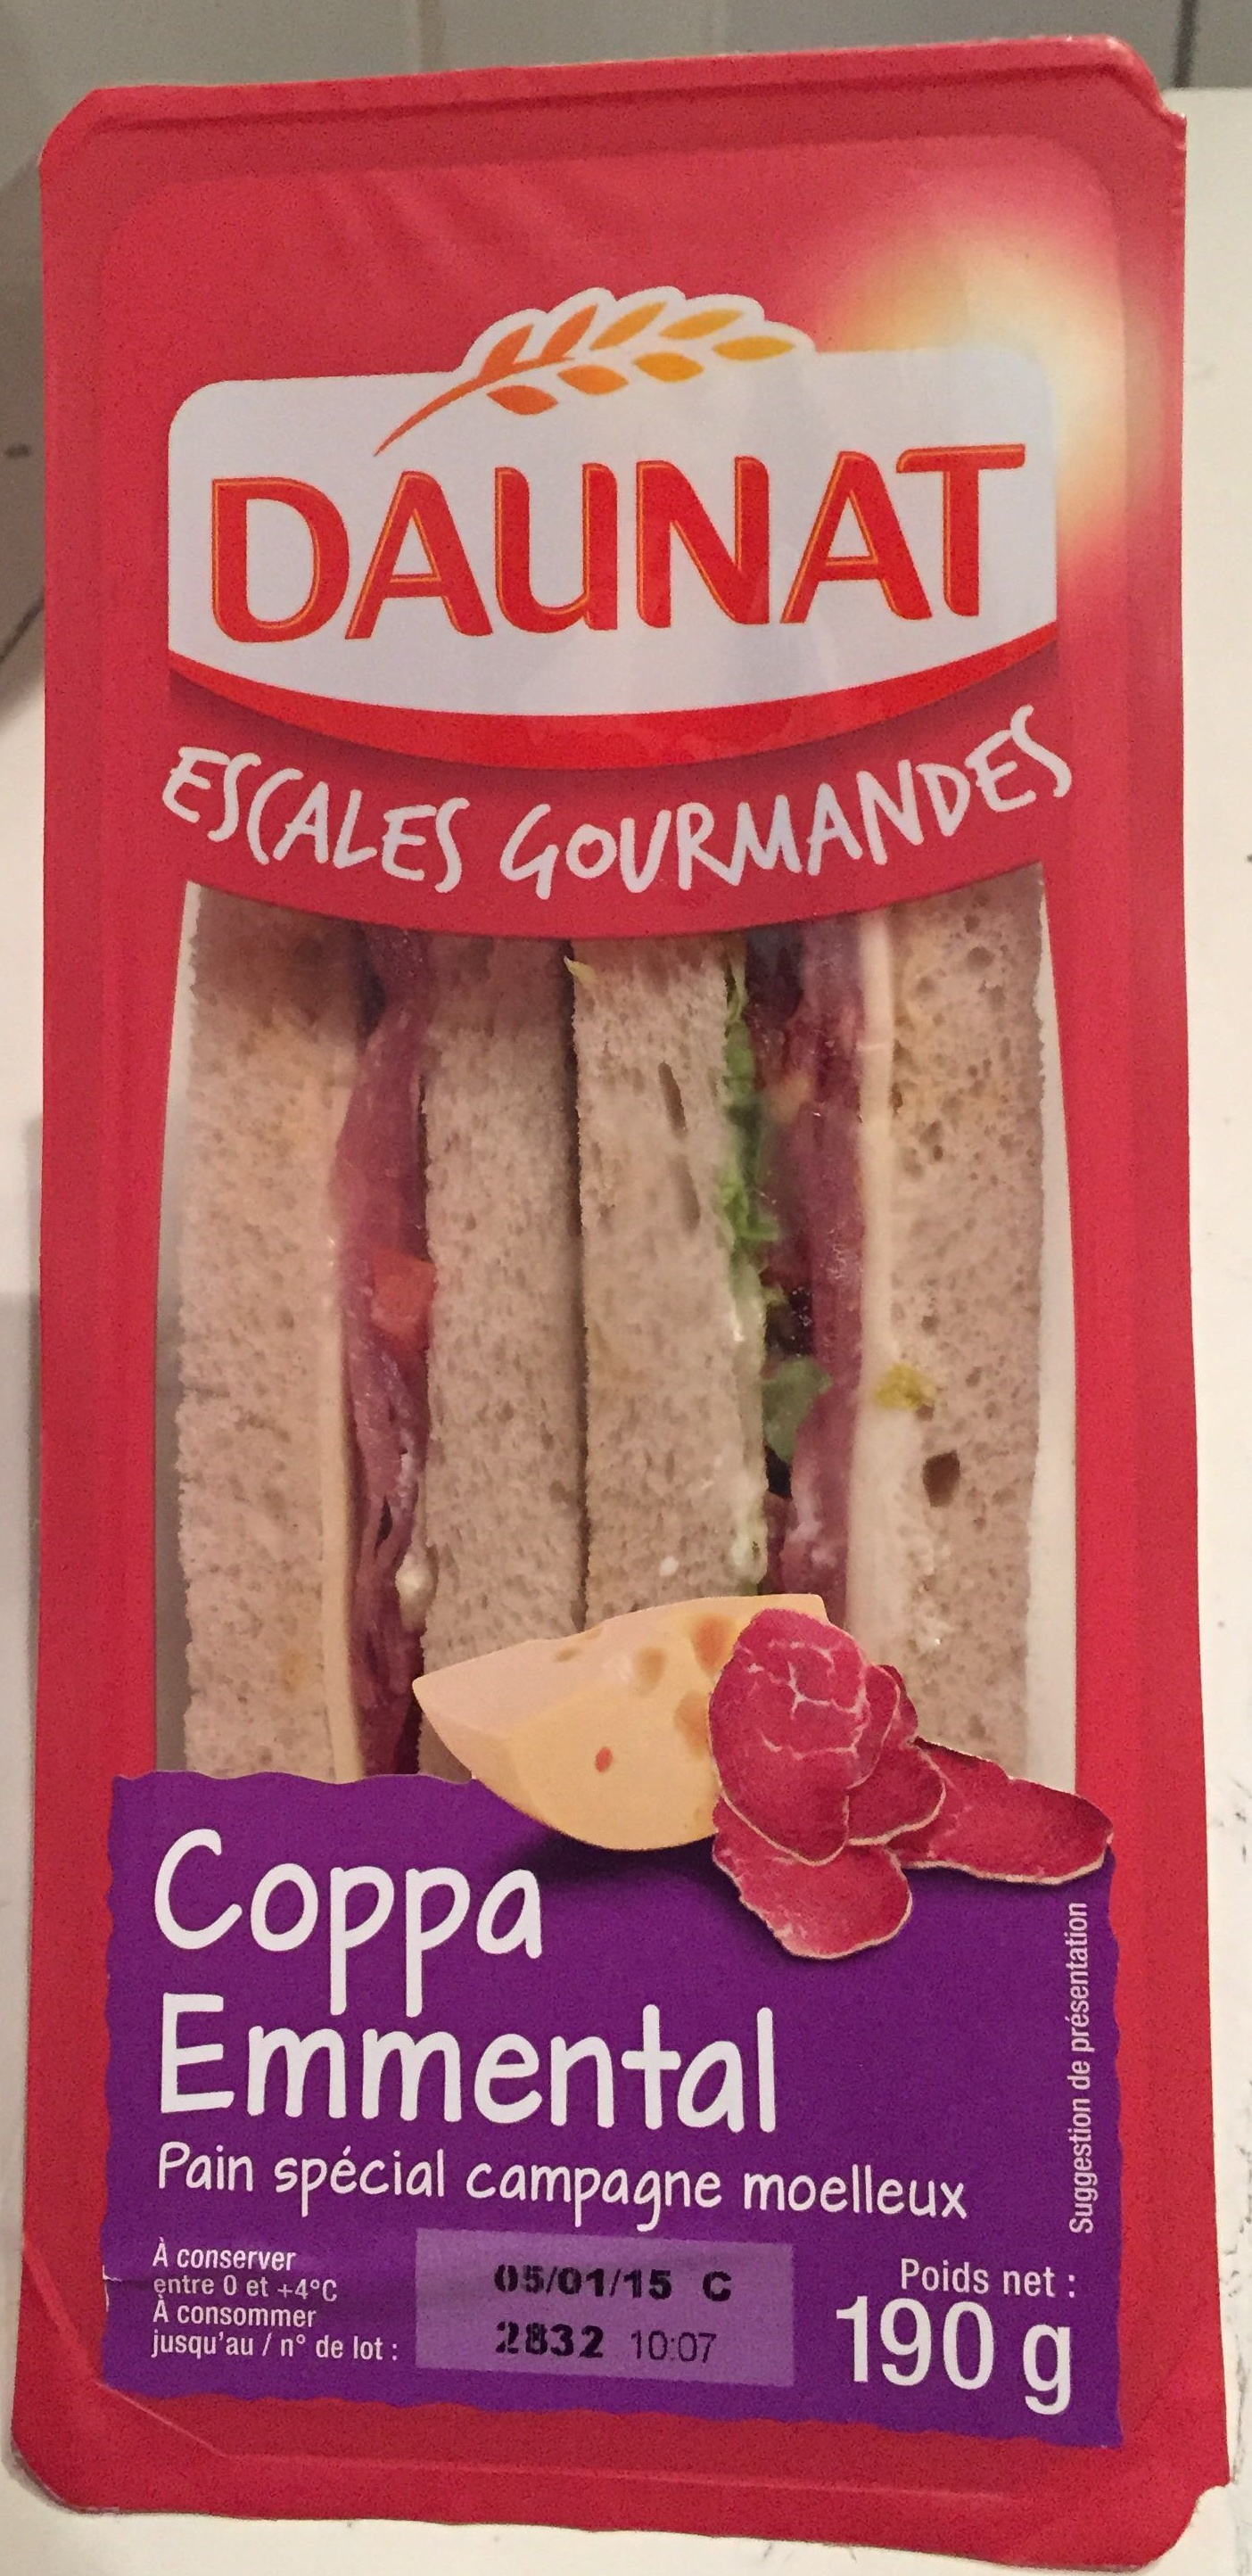 Escales Gourmandes Coppa Emmental - Product